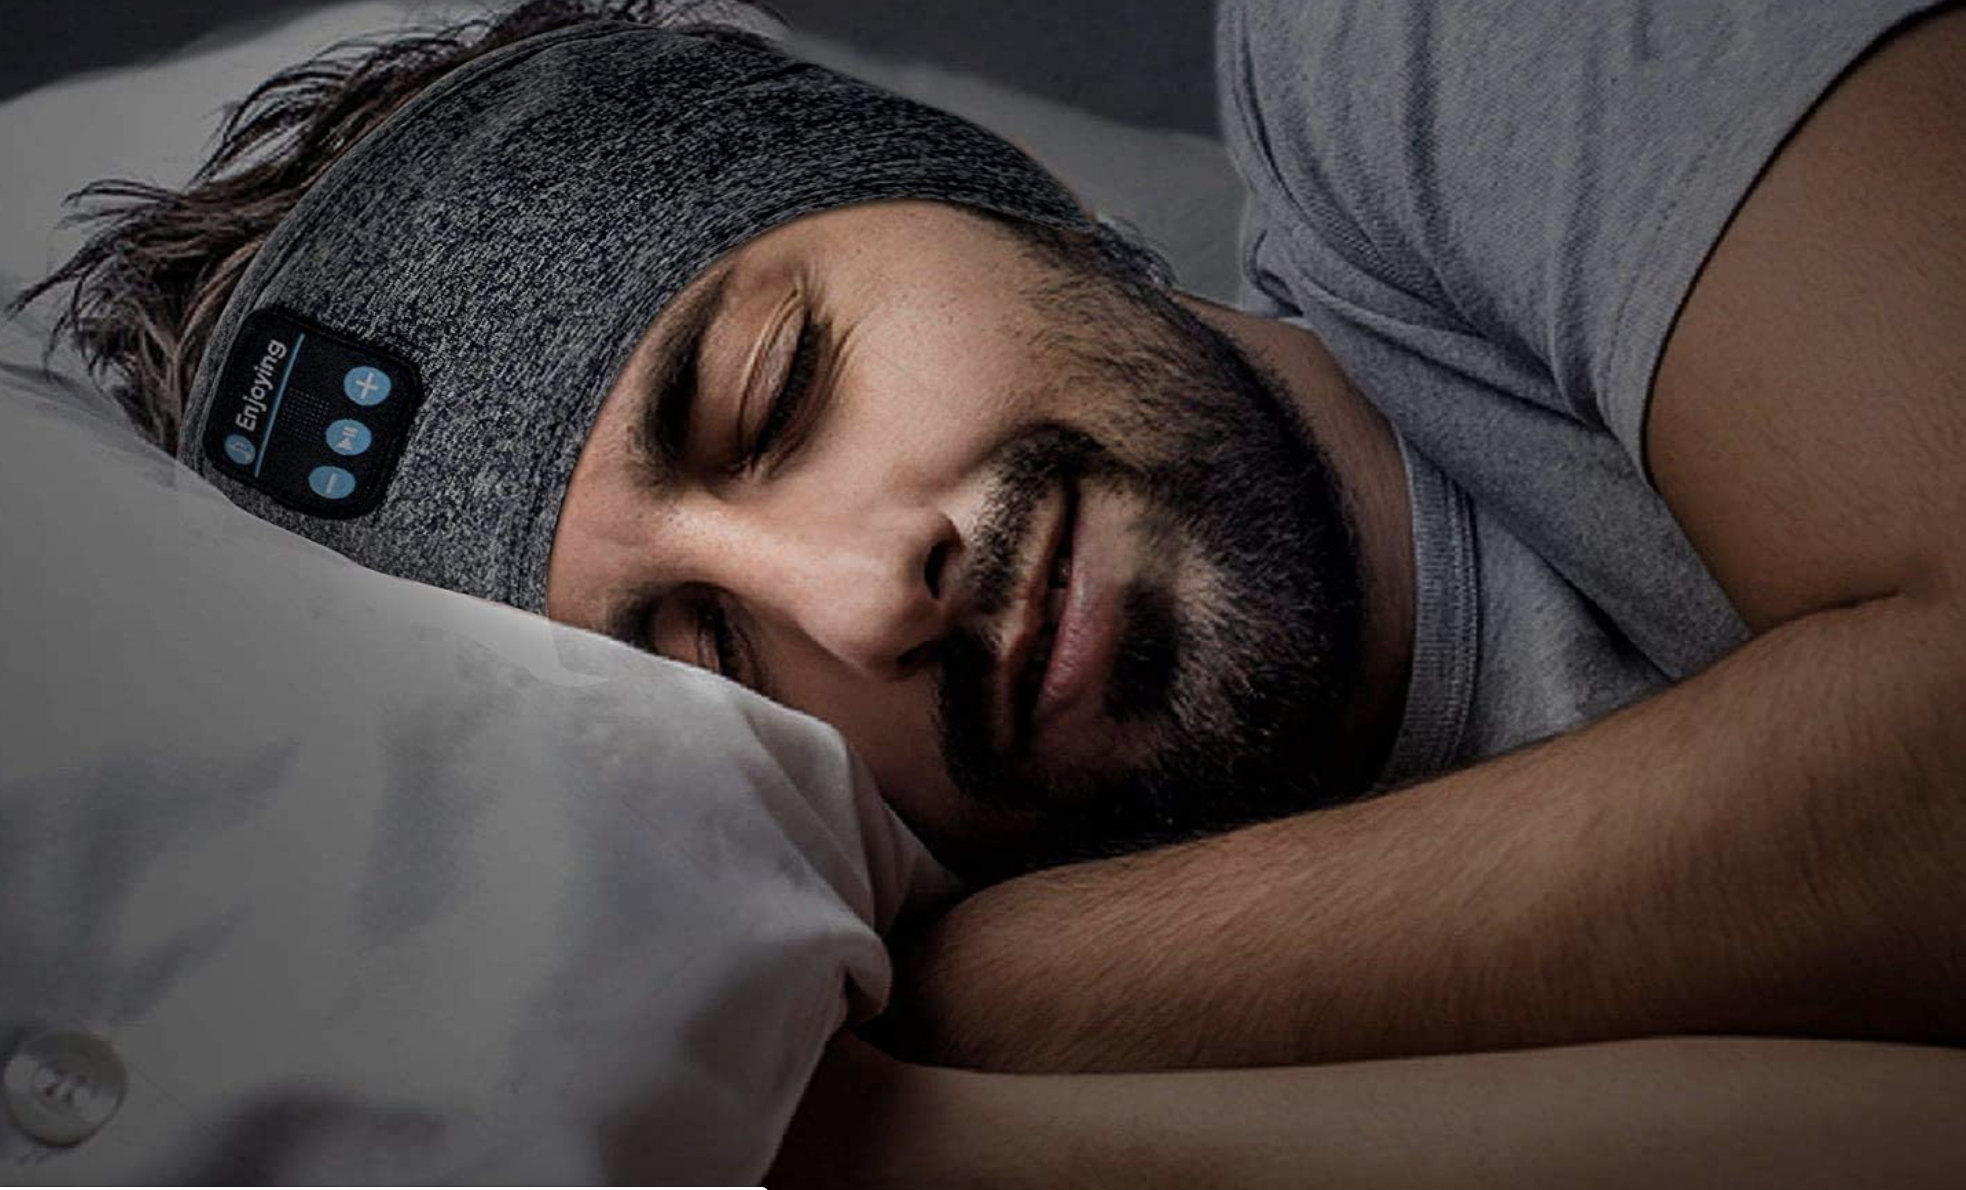 A model sleeping with the headphone band around their ears